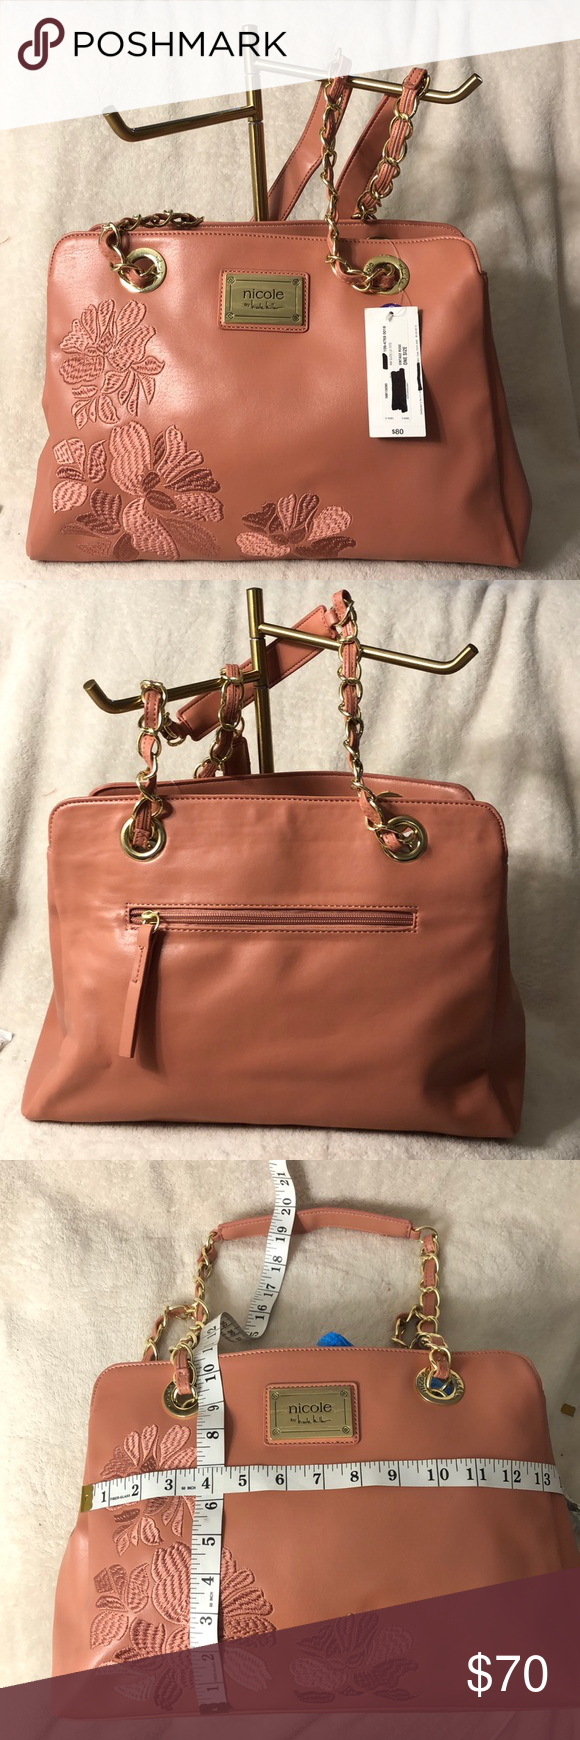 NICOLE MILLER Beautiful Light Pink Purse.. Perfect for